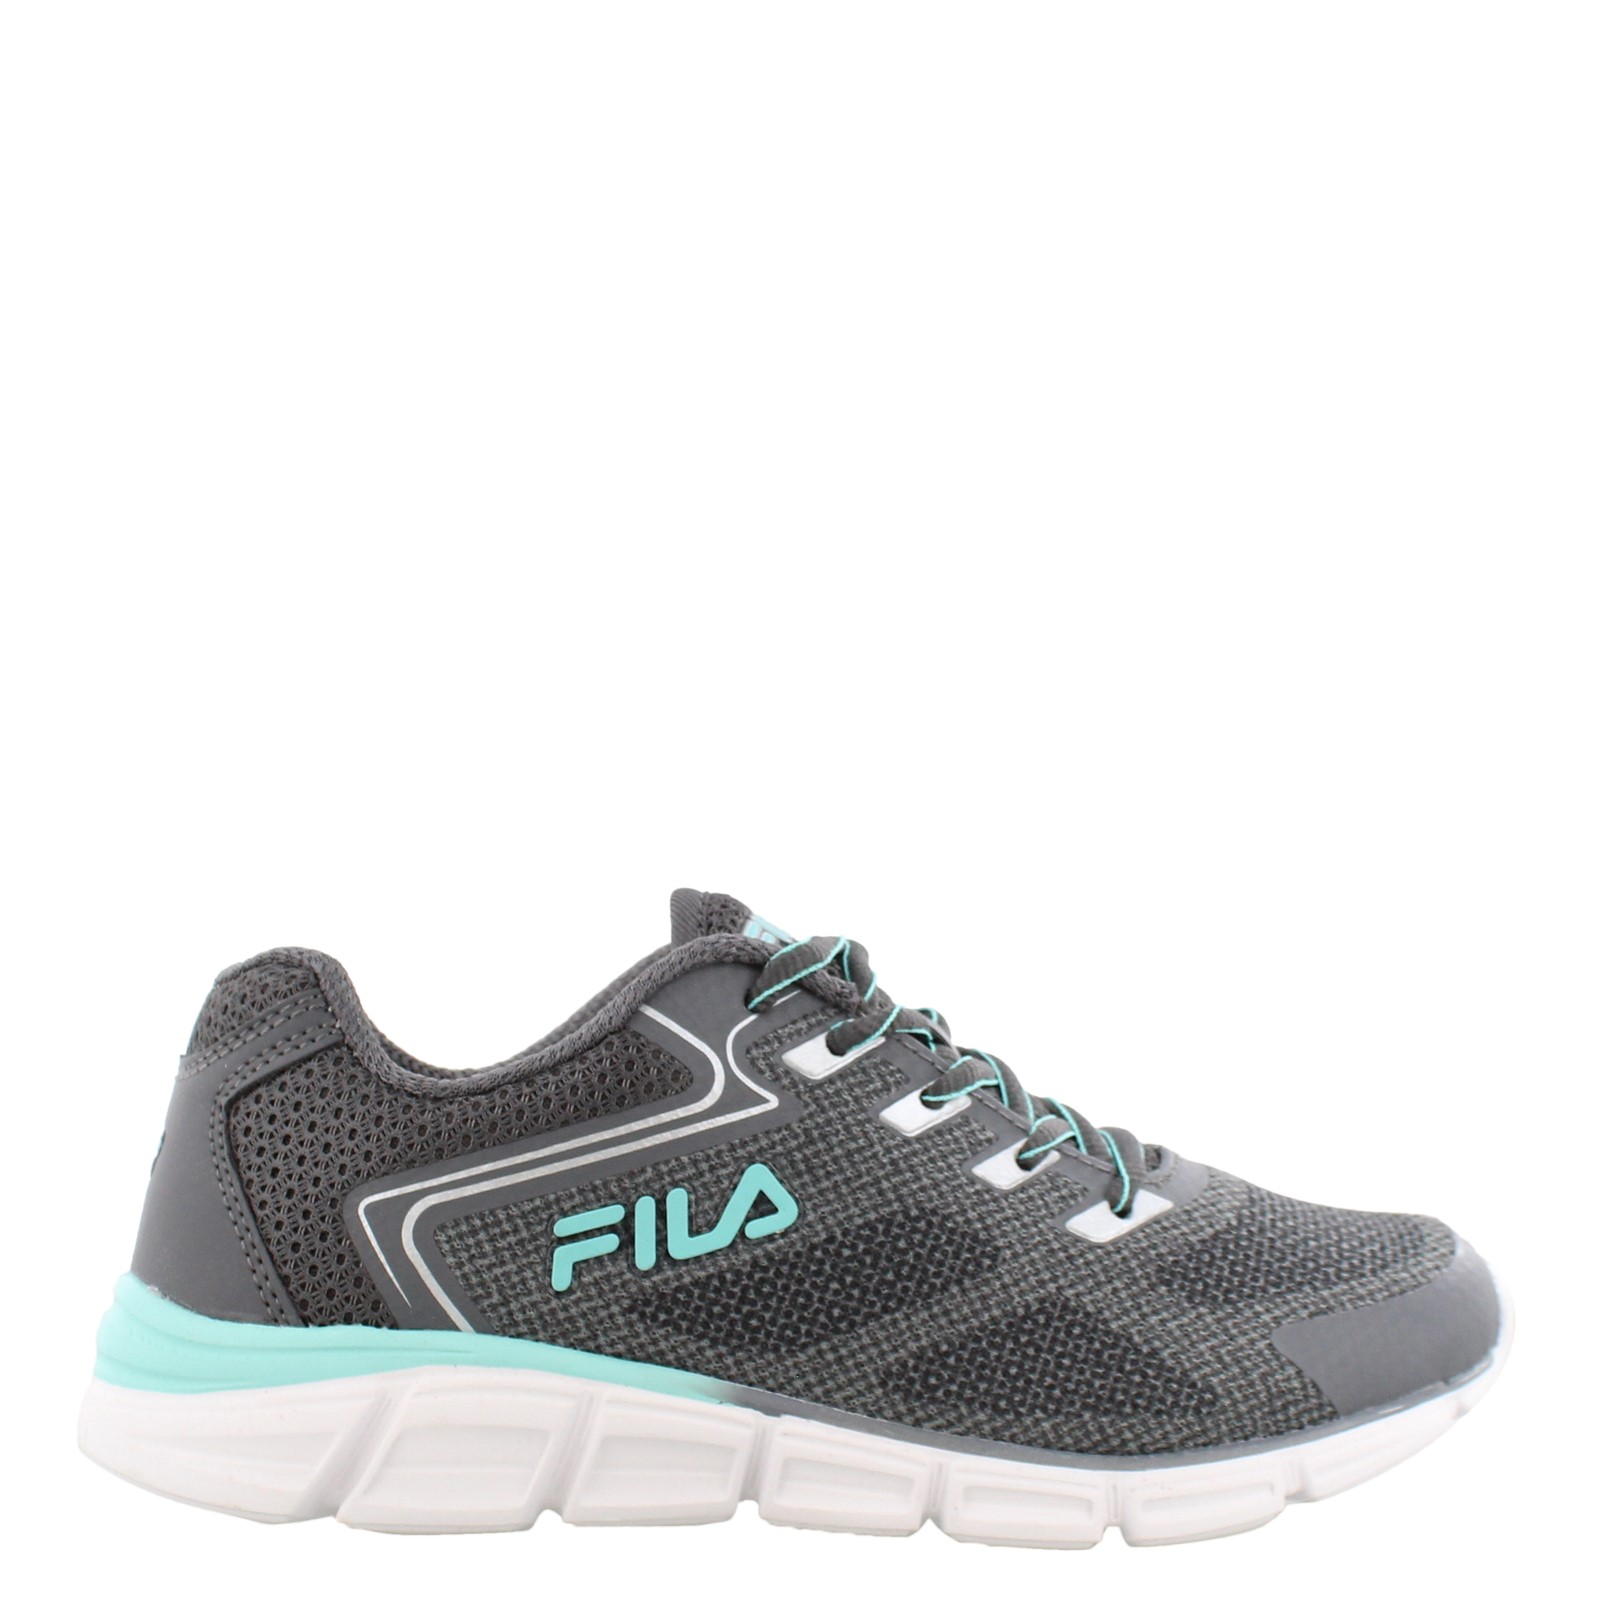 Womens Memory Exolize Running Shoes